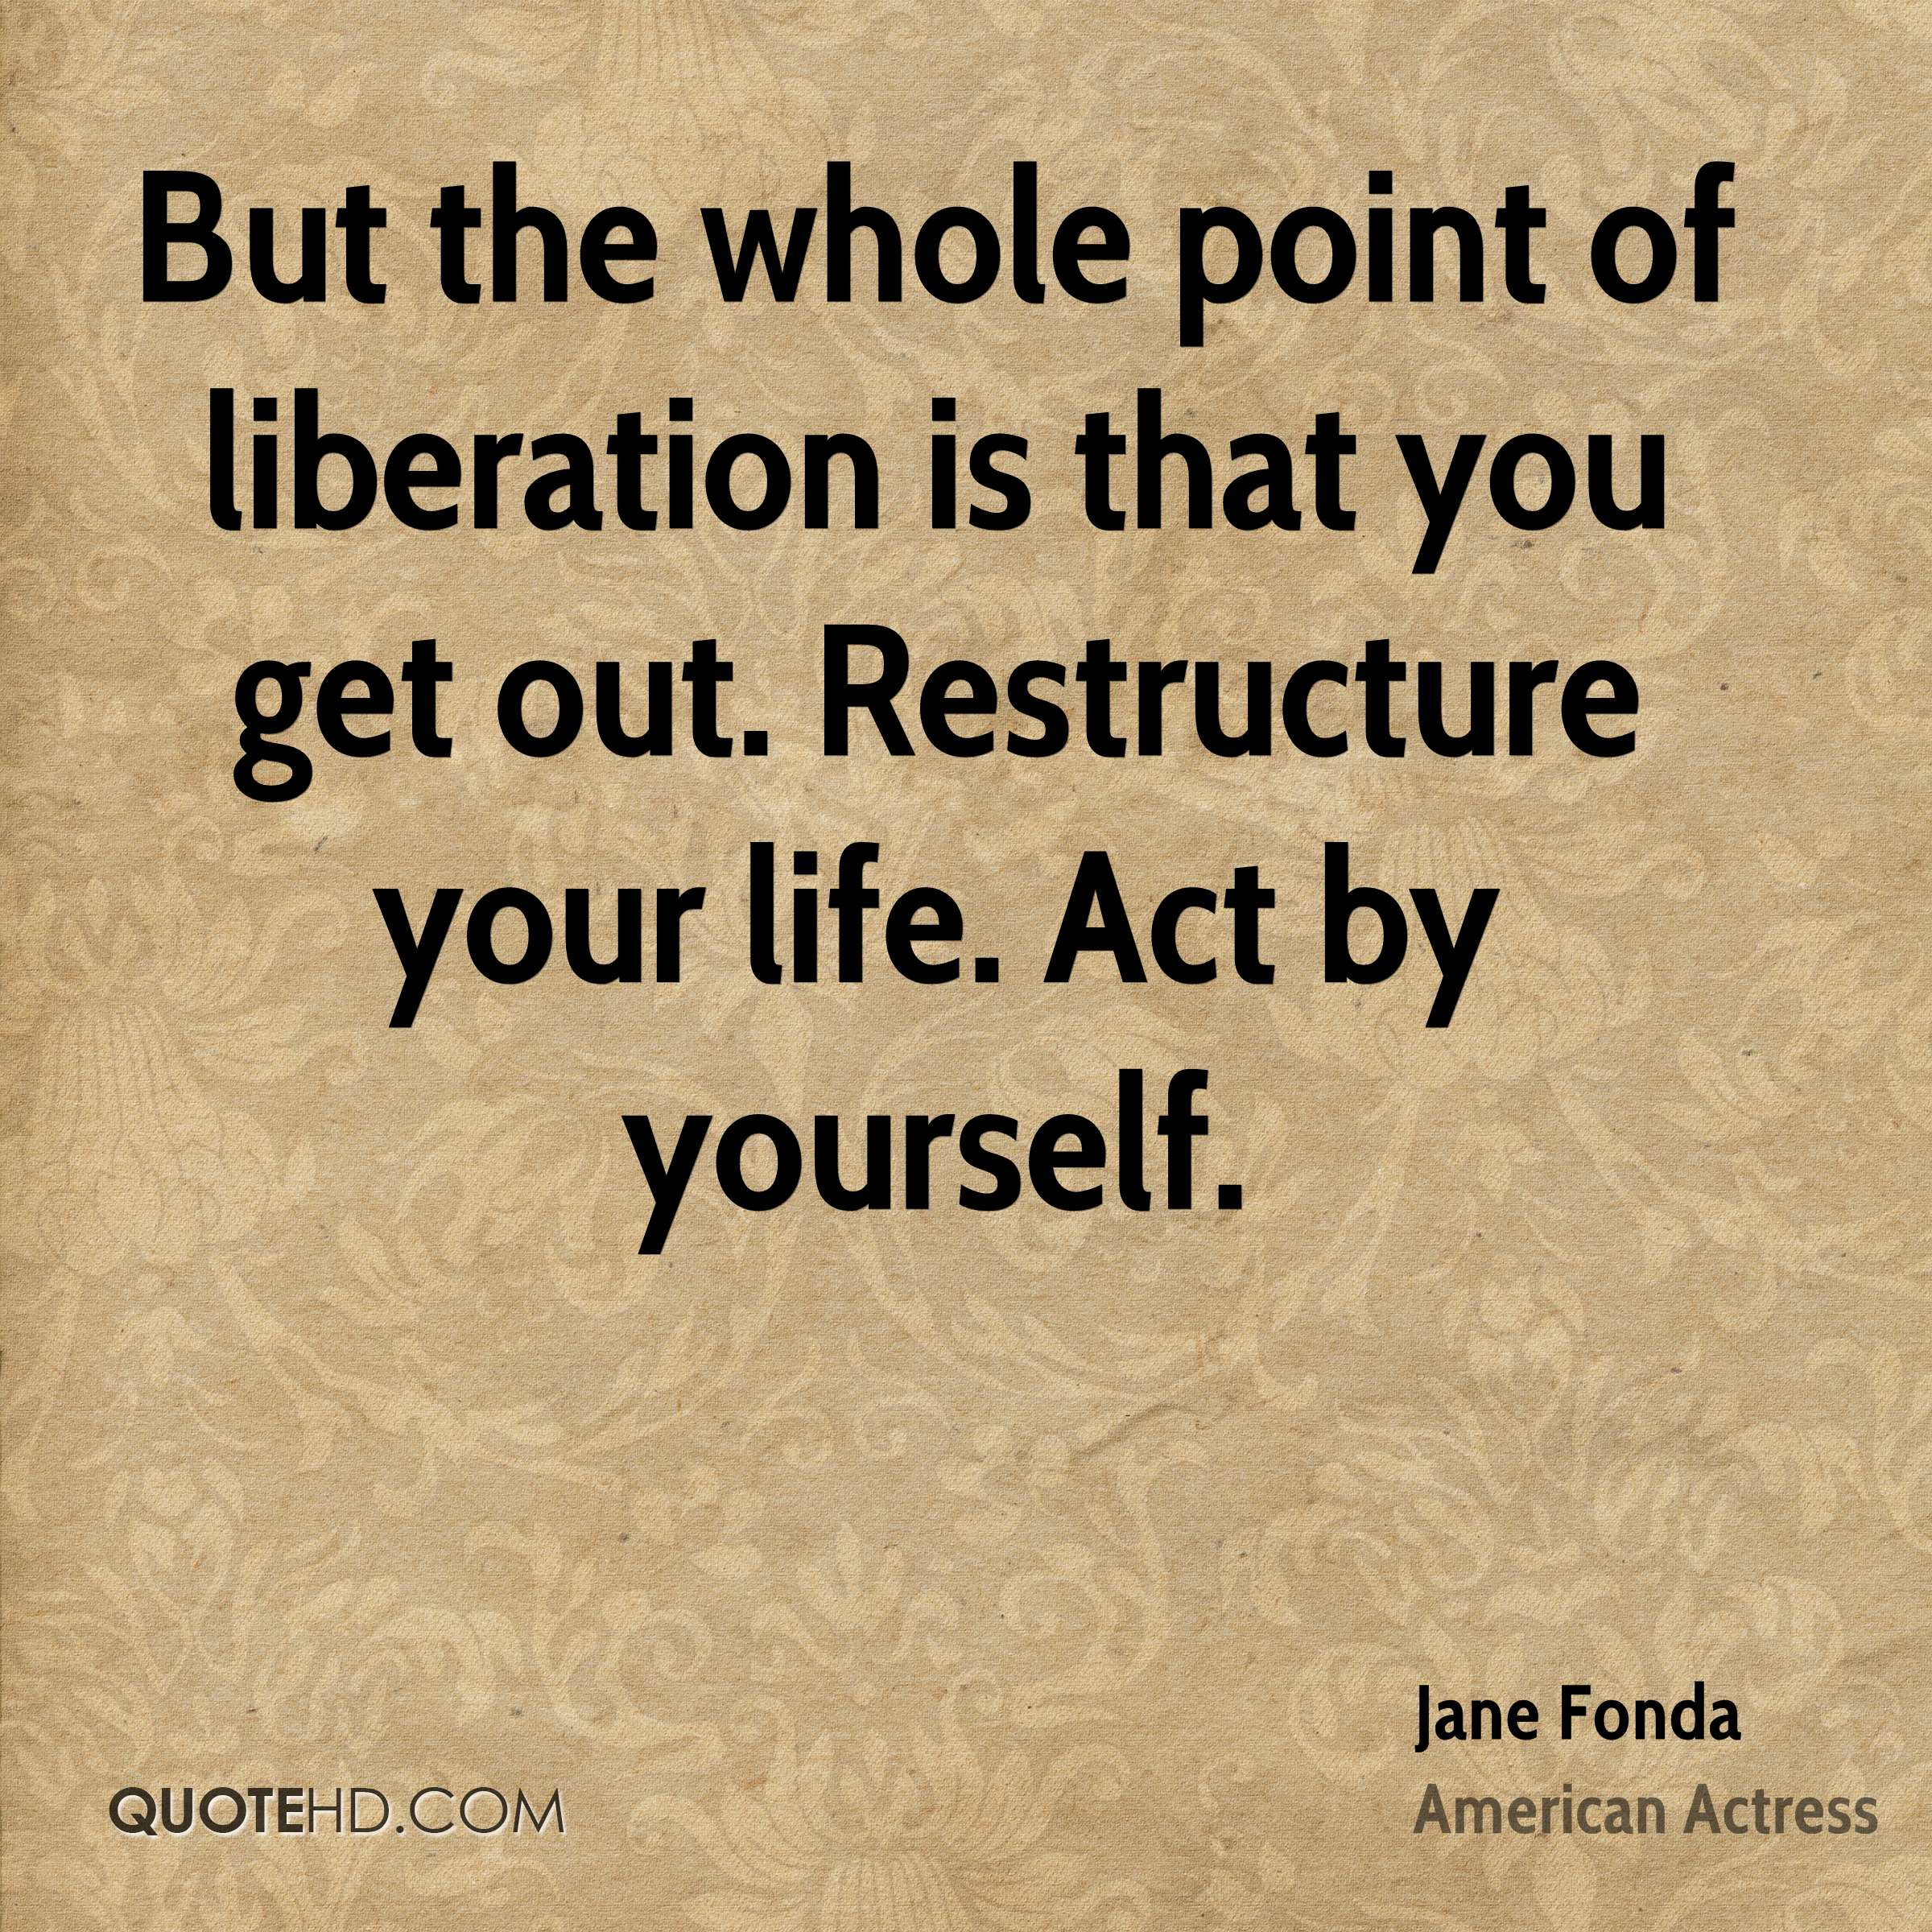 But the whole point of liberation is that you get out. Restructure your life. Act by yourself.